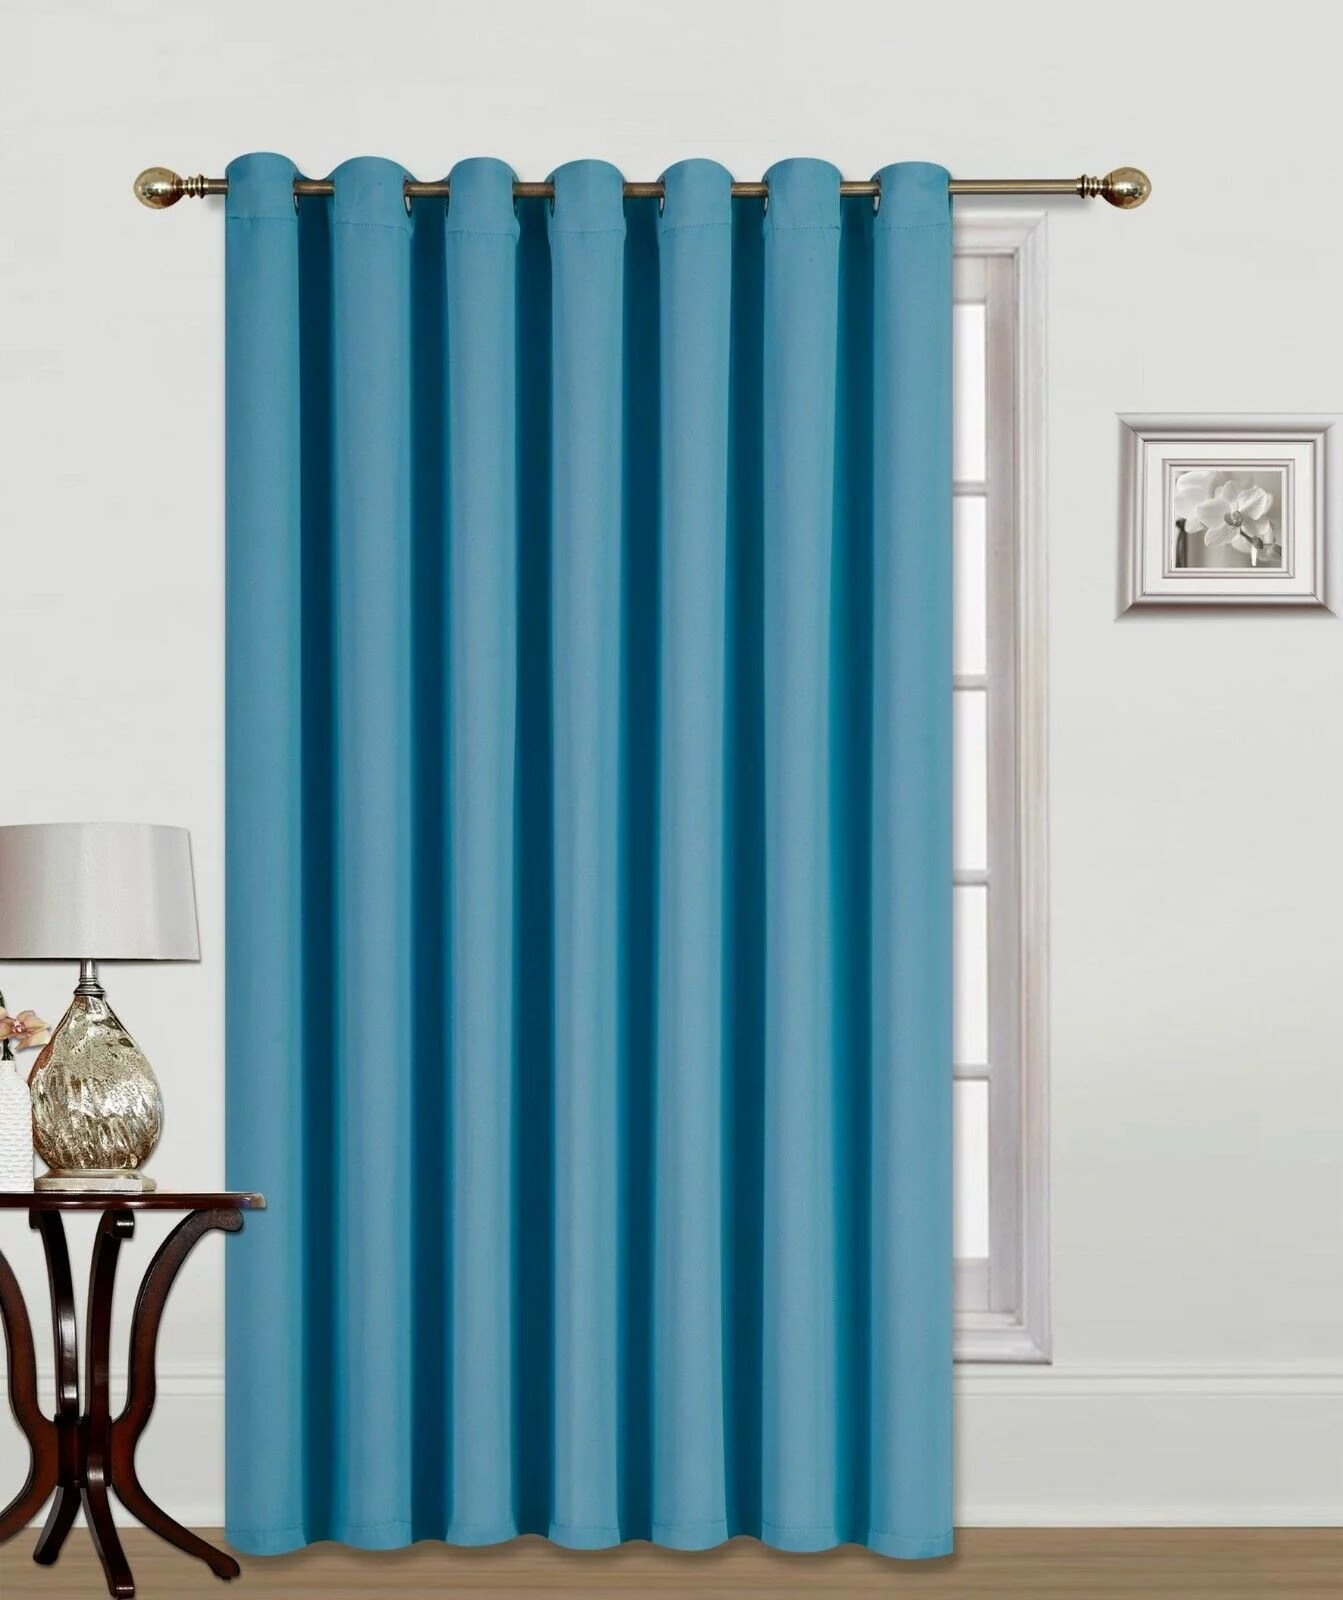 k100 thermal teal blackout panel 1pc patio door window curtain sliding door 3 layered grommets heat cold and full light blocking drapes divider size